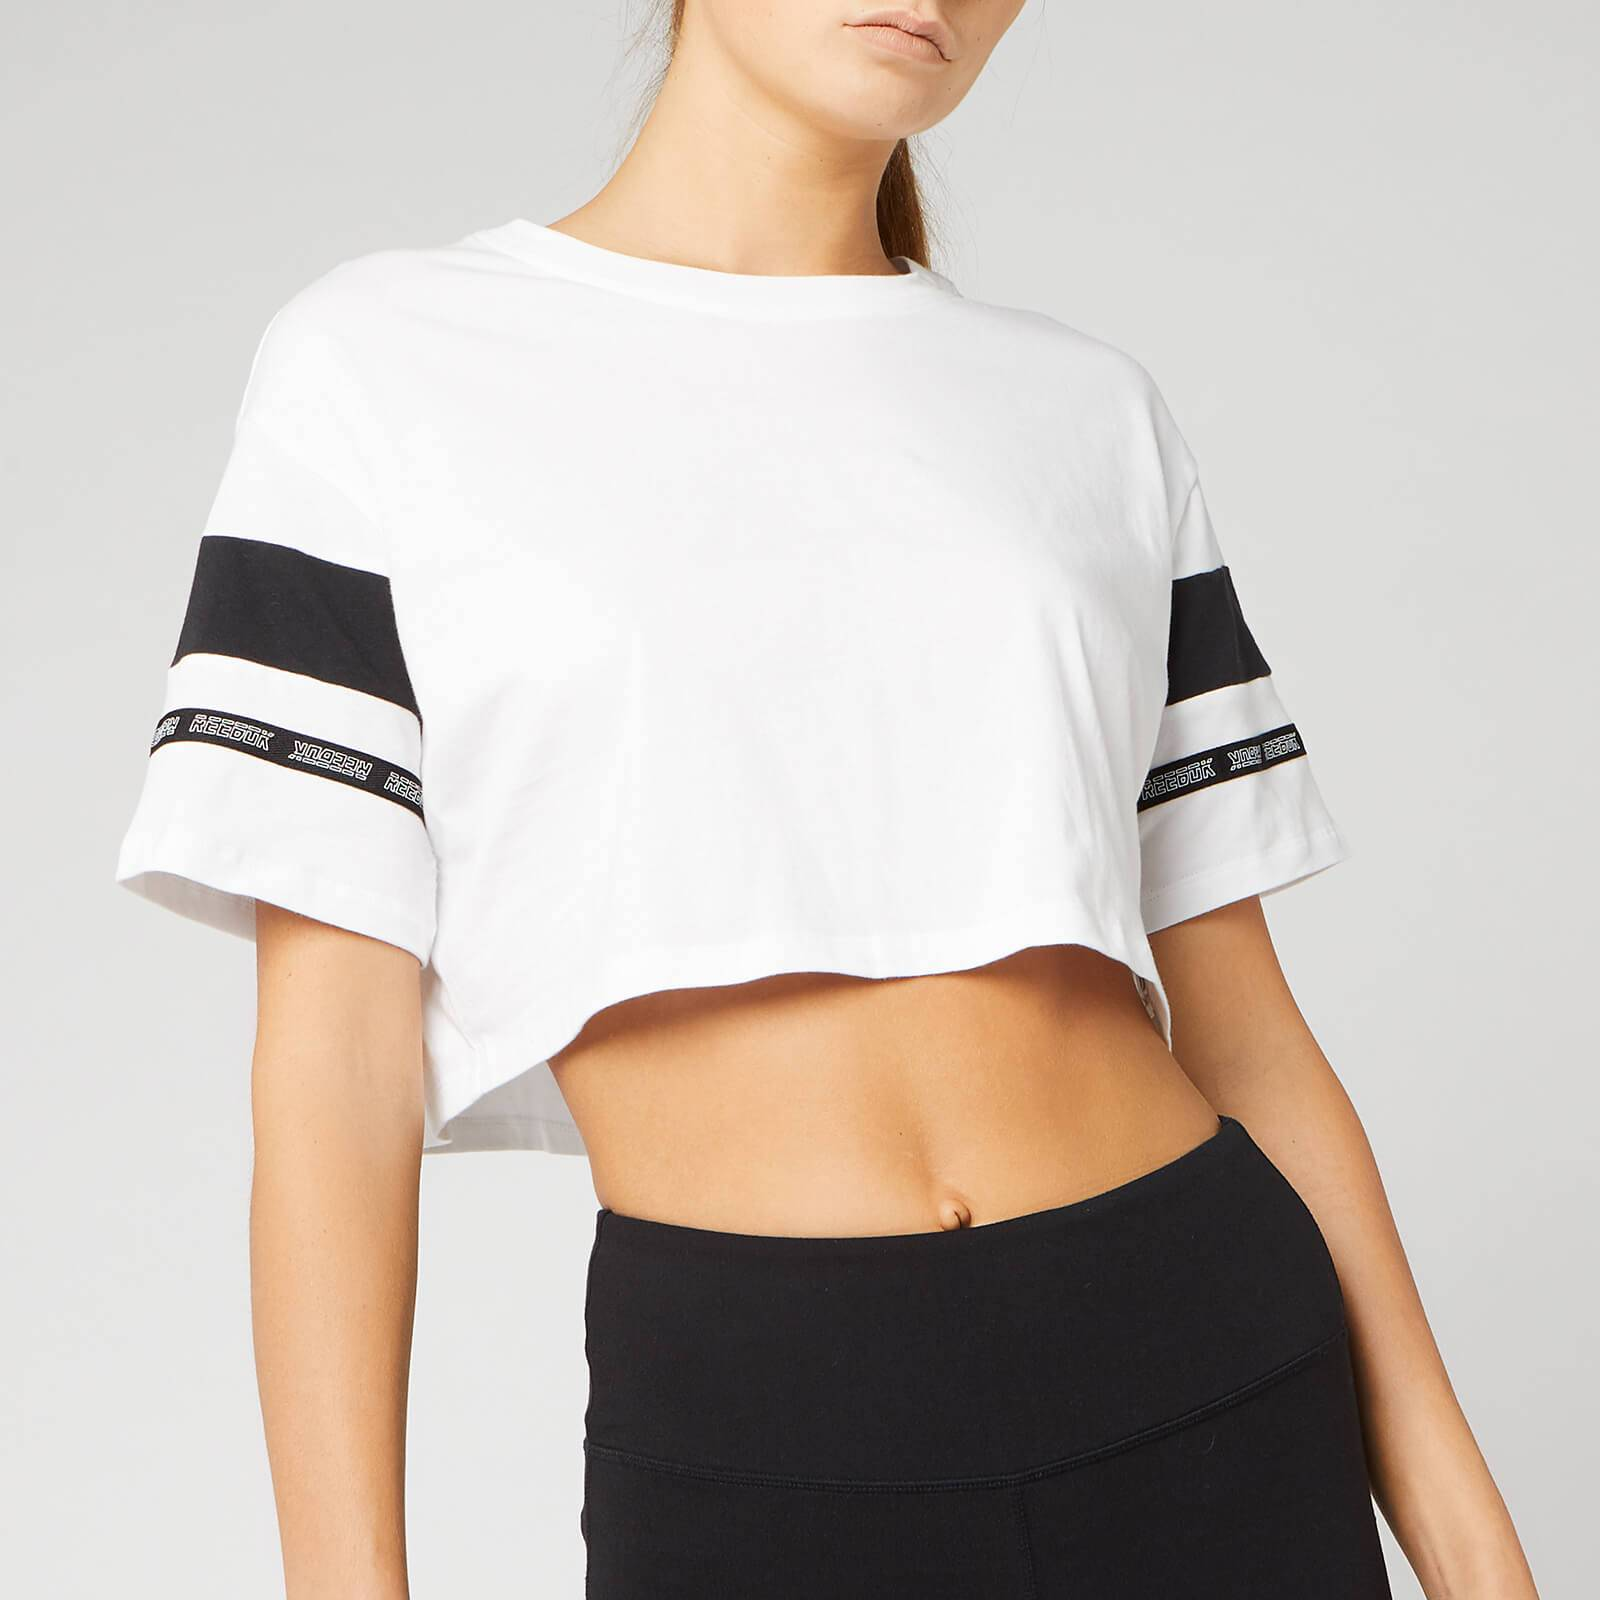 Reebok Women's WOR MYT Solid Cropped Short Sleeve T-Shirt - White - S - White